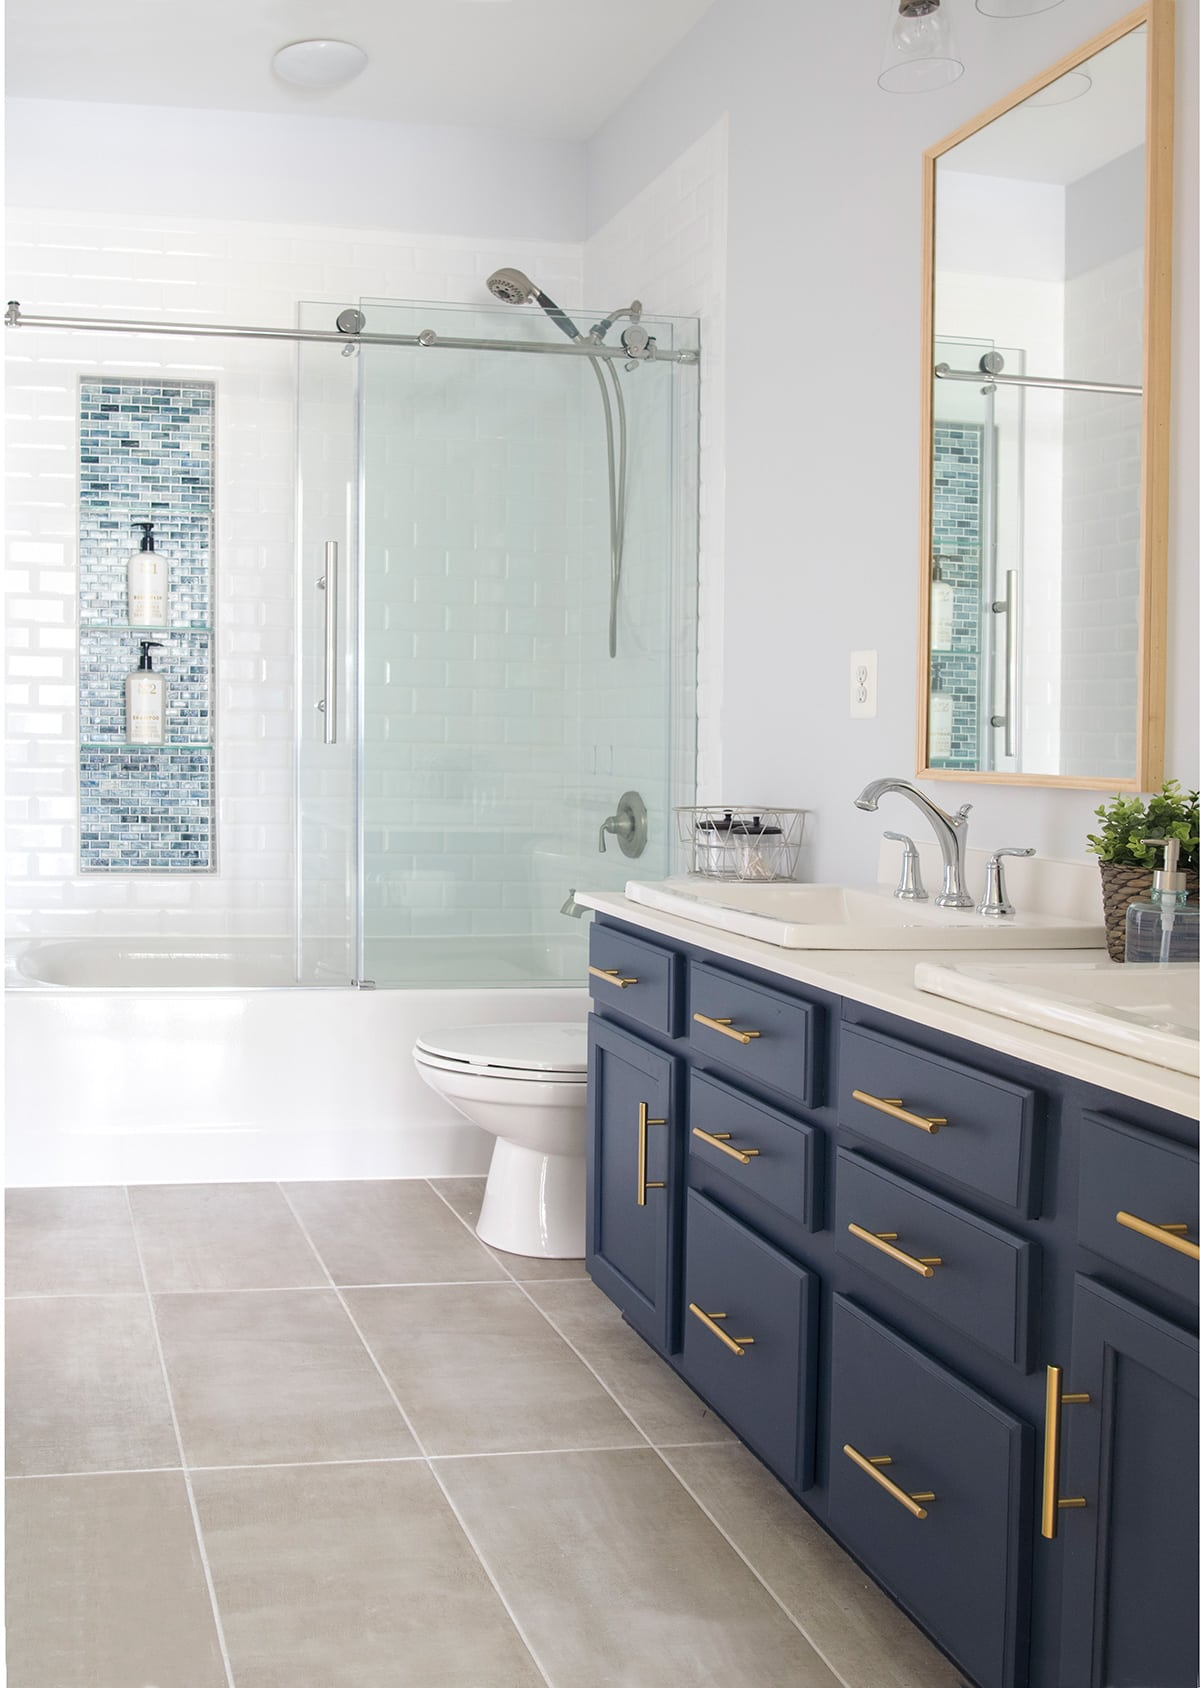 Modern Classic Guest Bathroom Makeover Reveal - Classic bathroom renovations